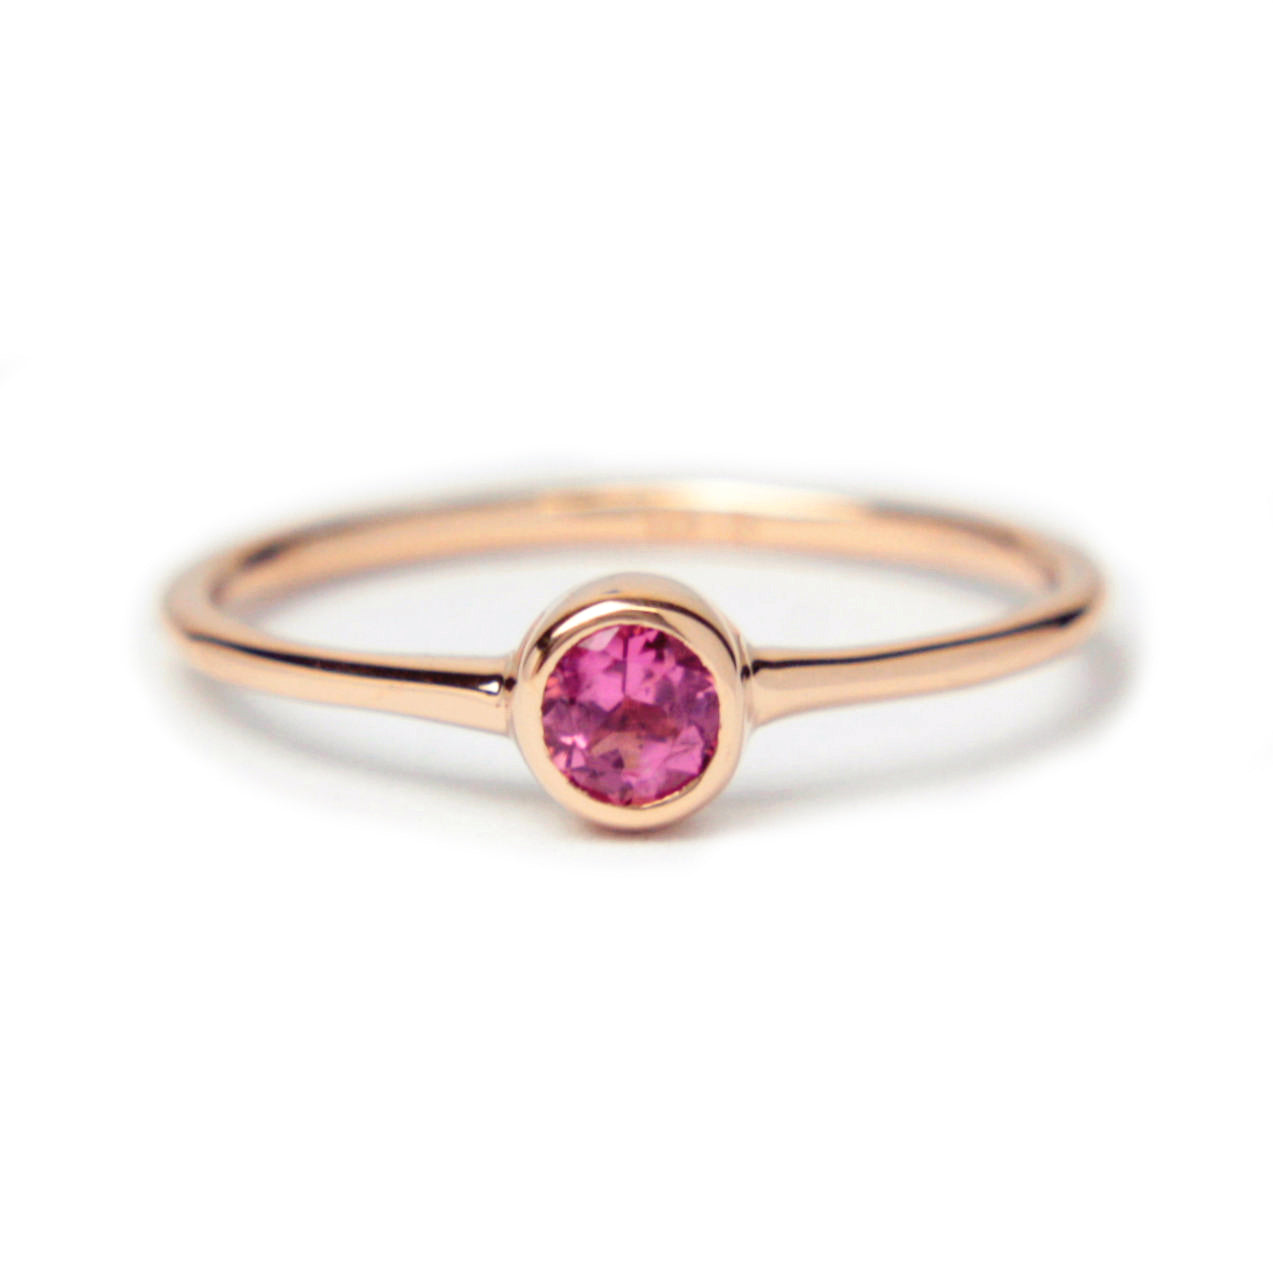 Tourmaline 14k Gold Ring - Manari Design